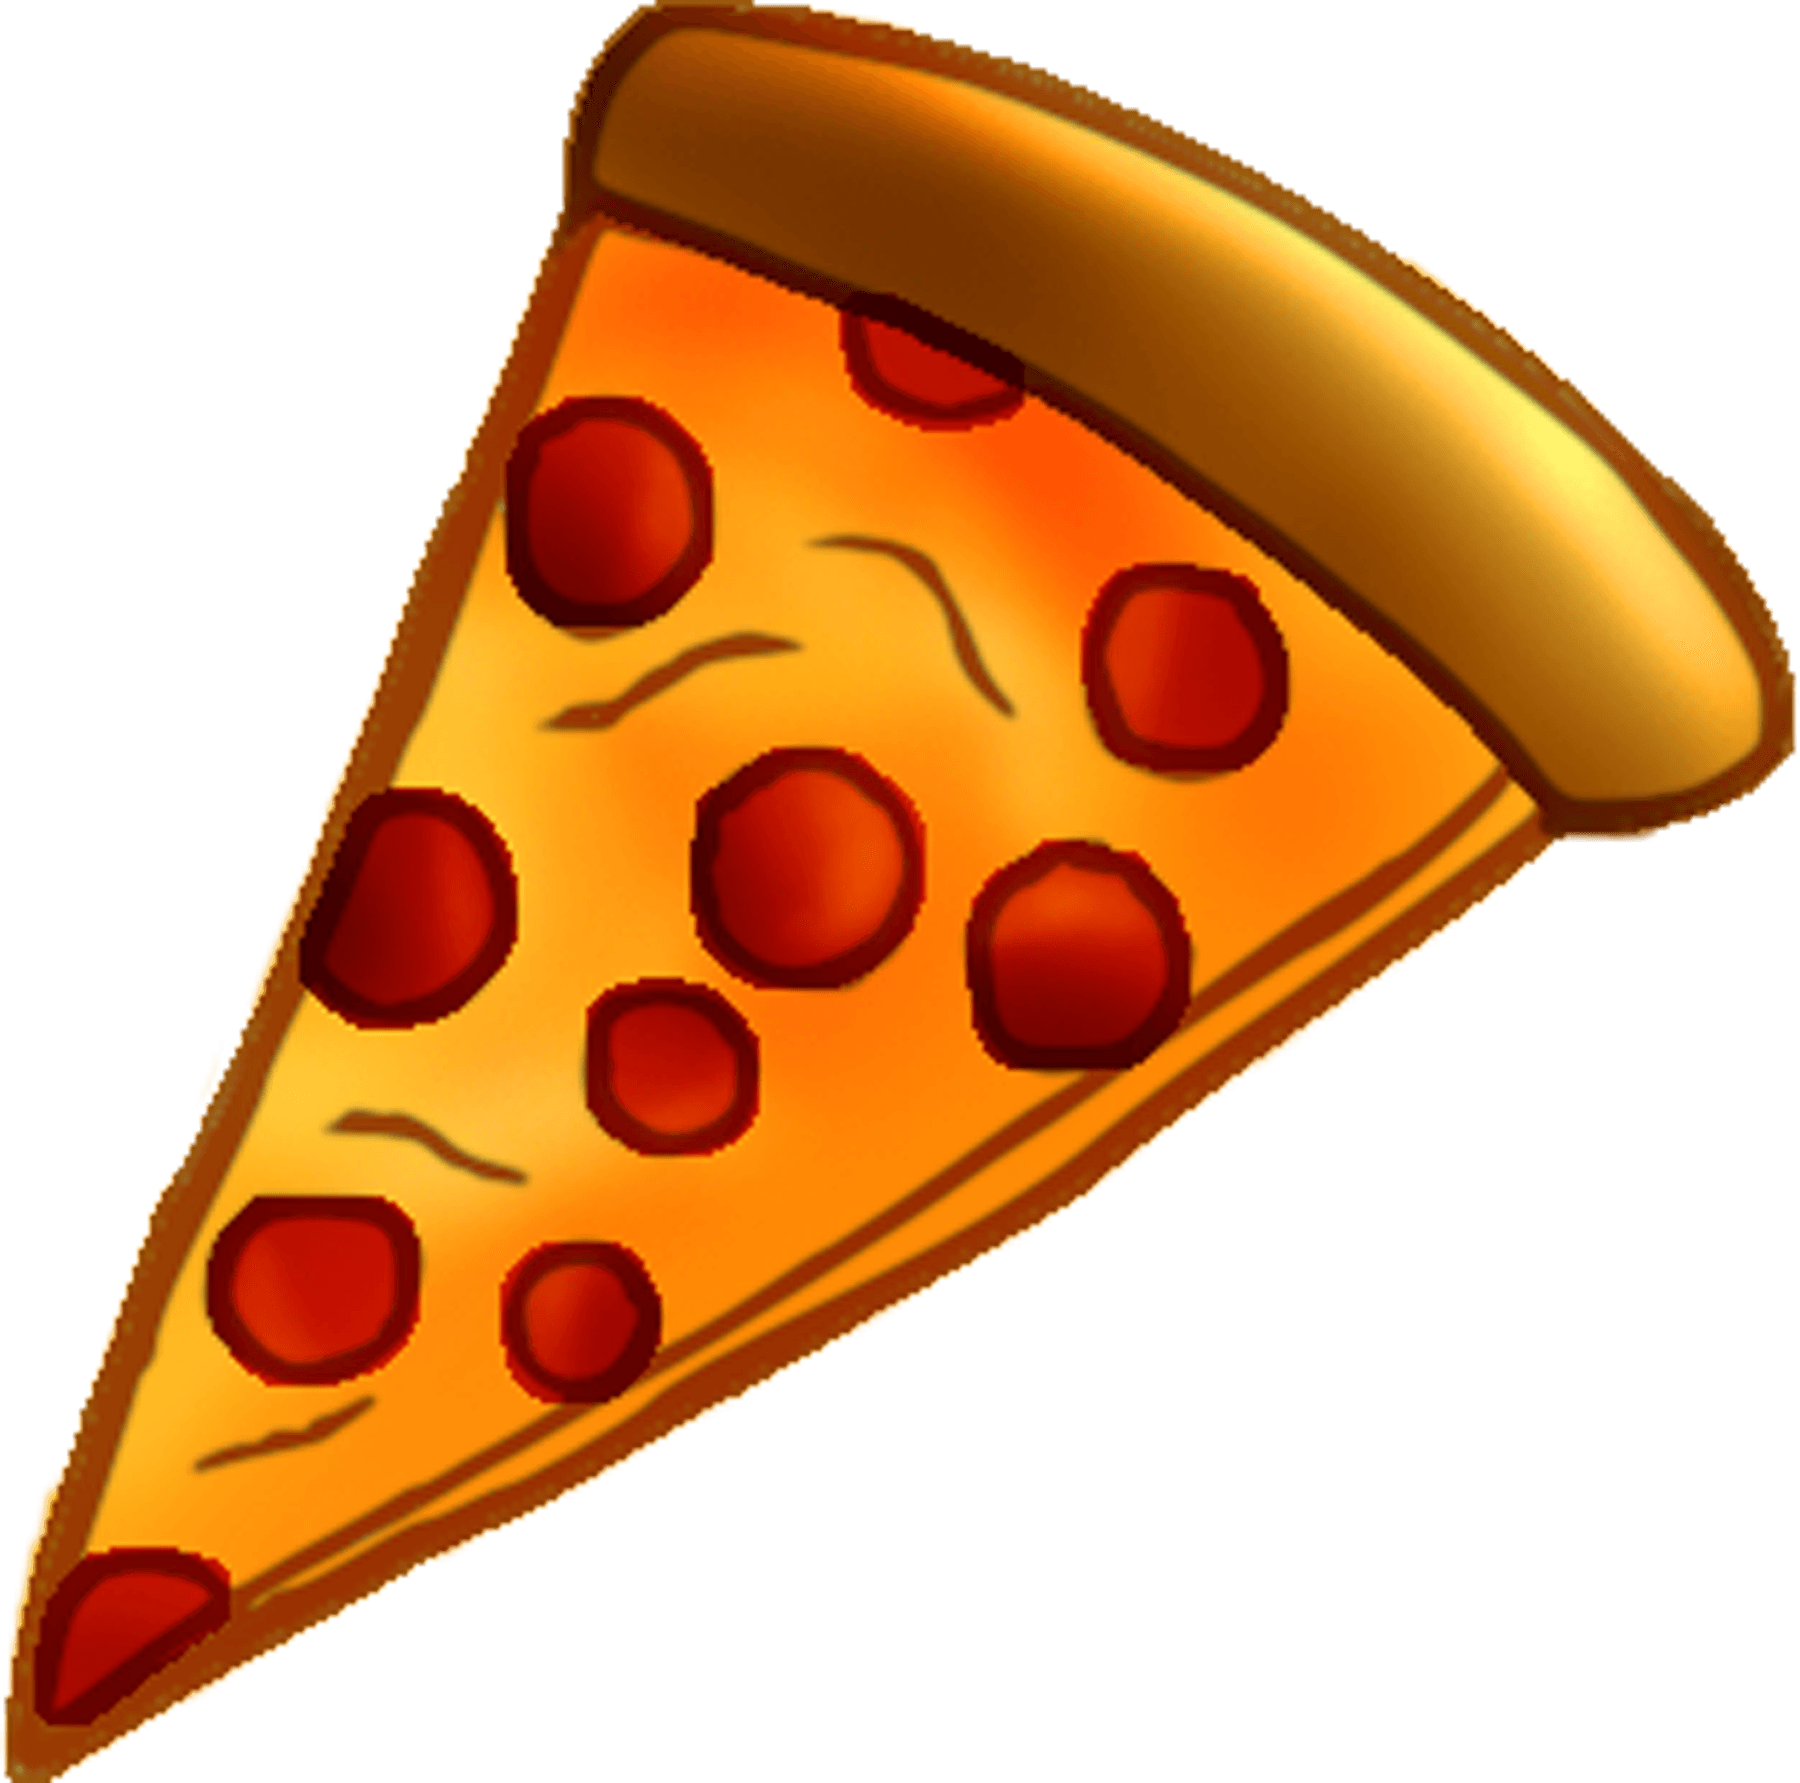 Pan clipart pizza pan, Pan pizza pan Transparent FREE for.